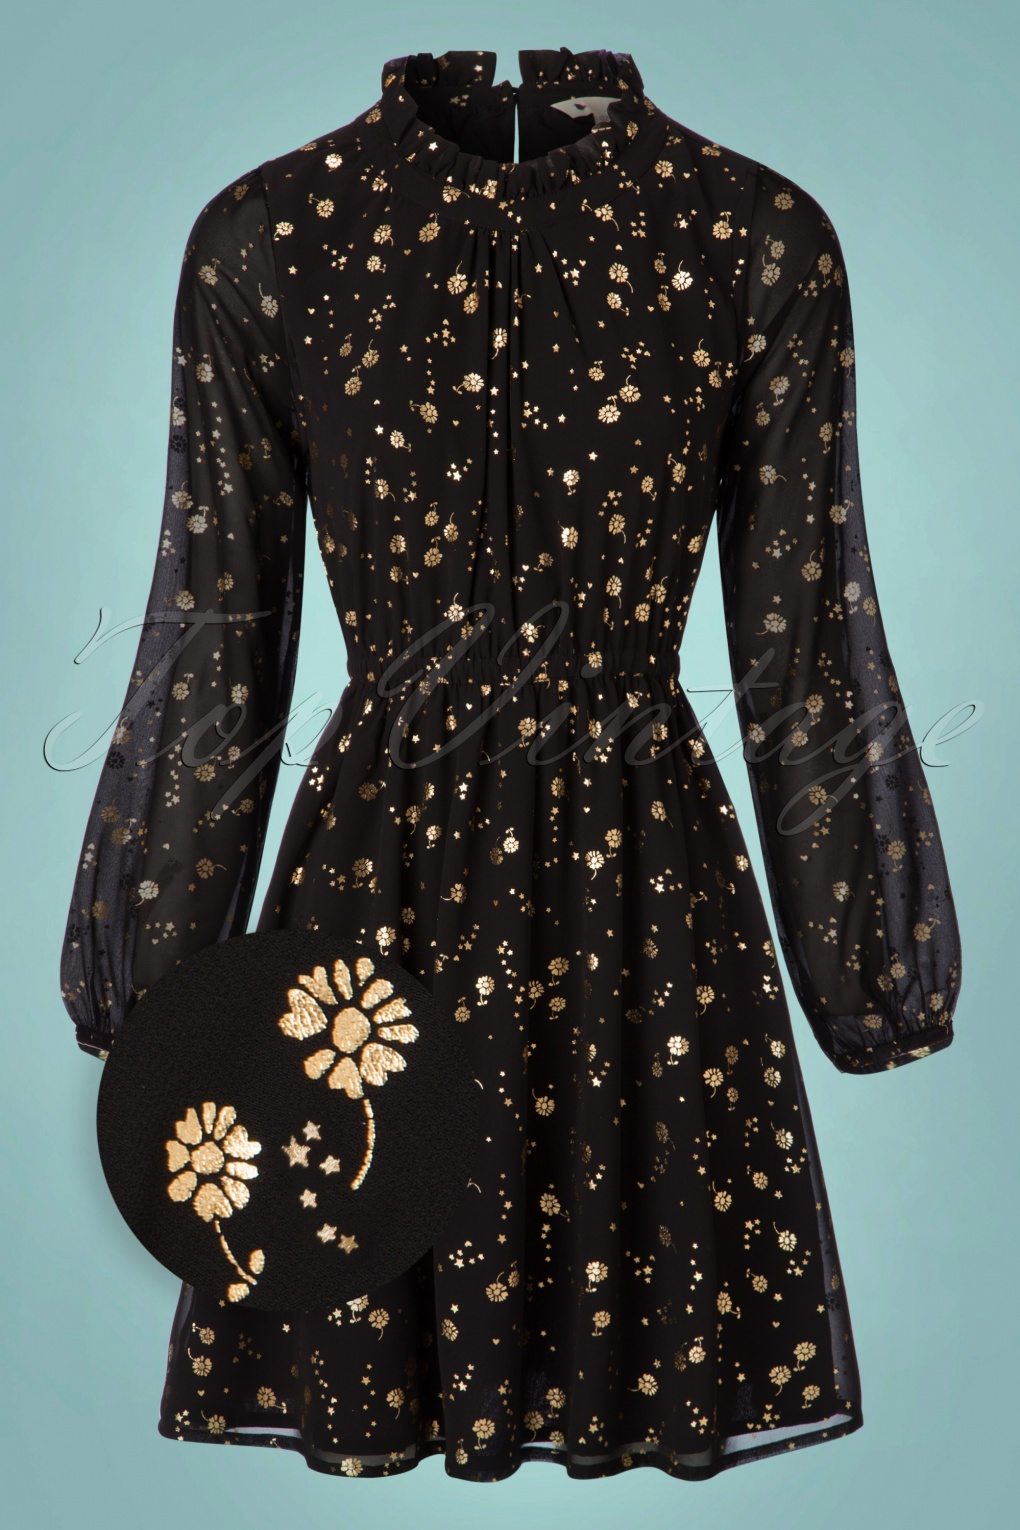 1960s – 70s Dresses- Retro Inspired Fashion 60s Ditsy Foil Dress in Black and Gold £80.04 AT vintagedancer.com